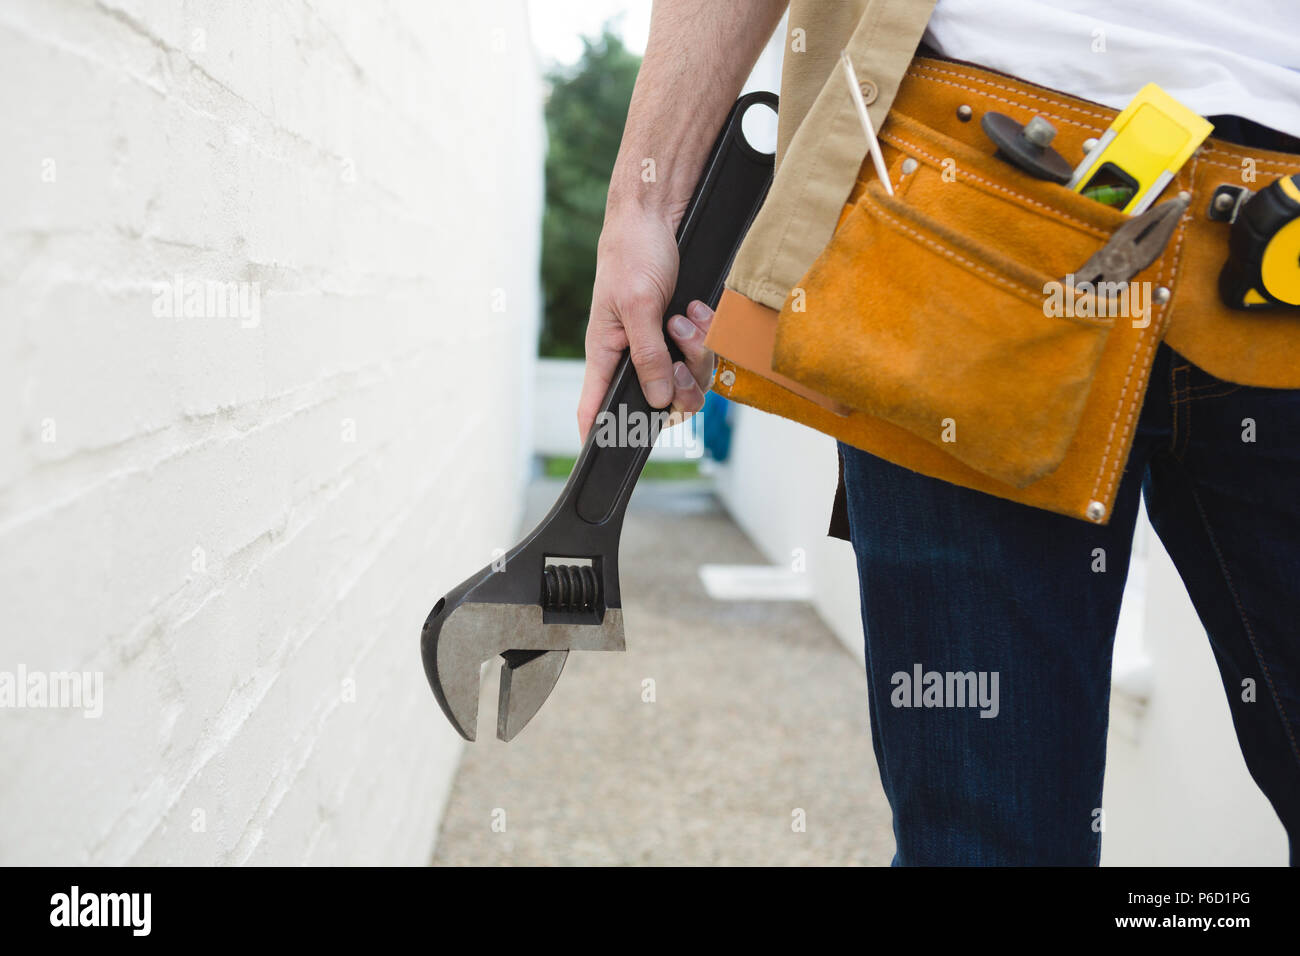 Male carpenter with tool belt holding wrench - Stock Image